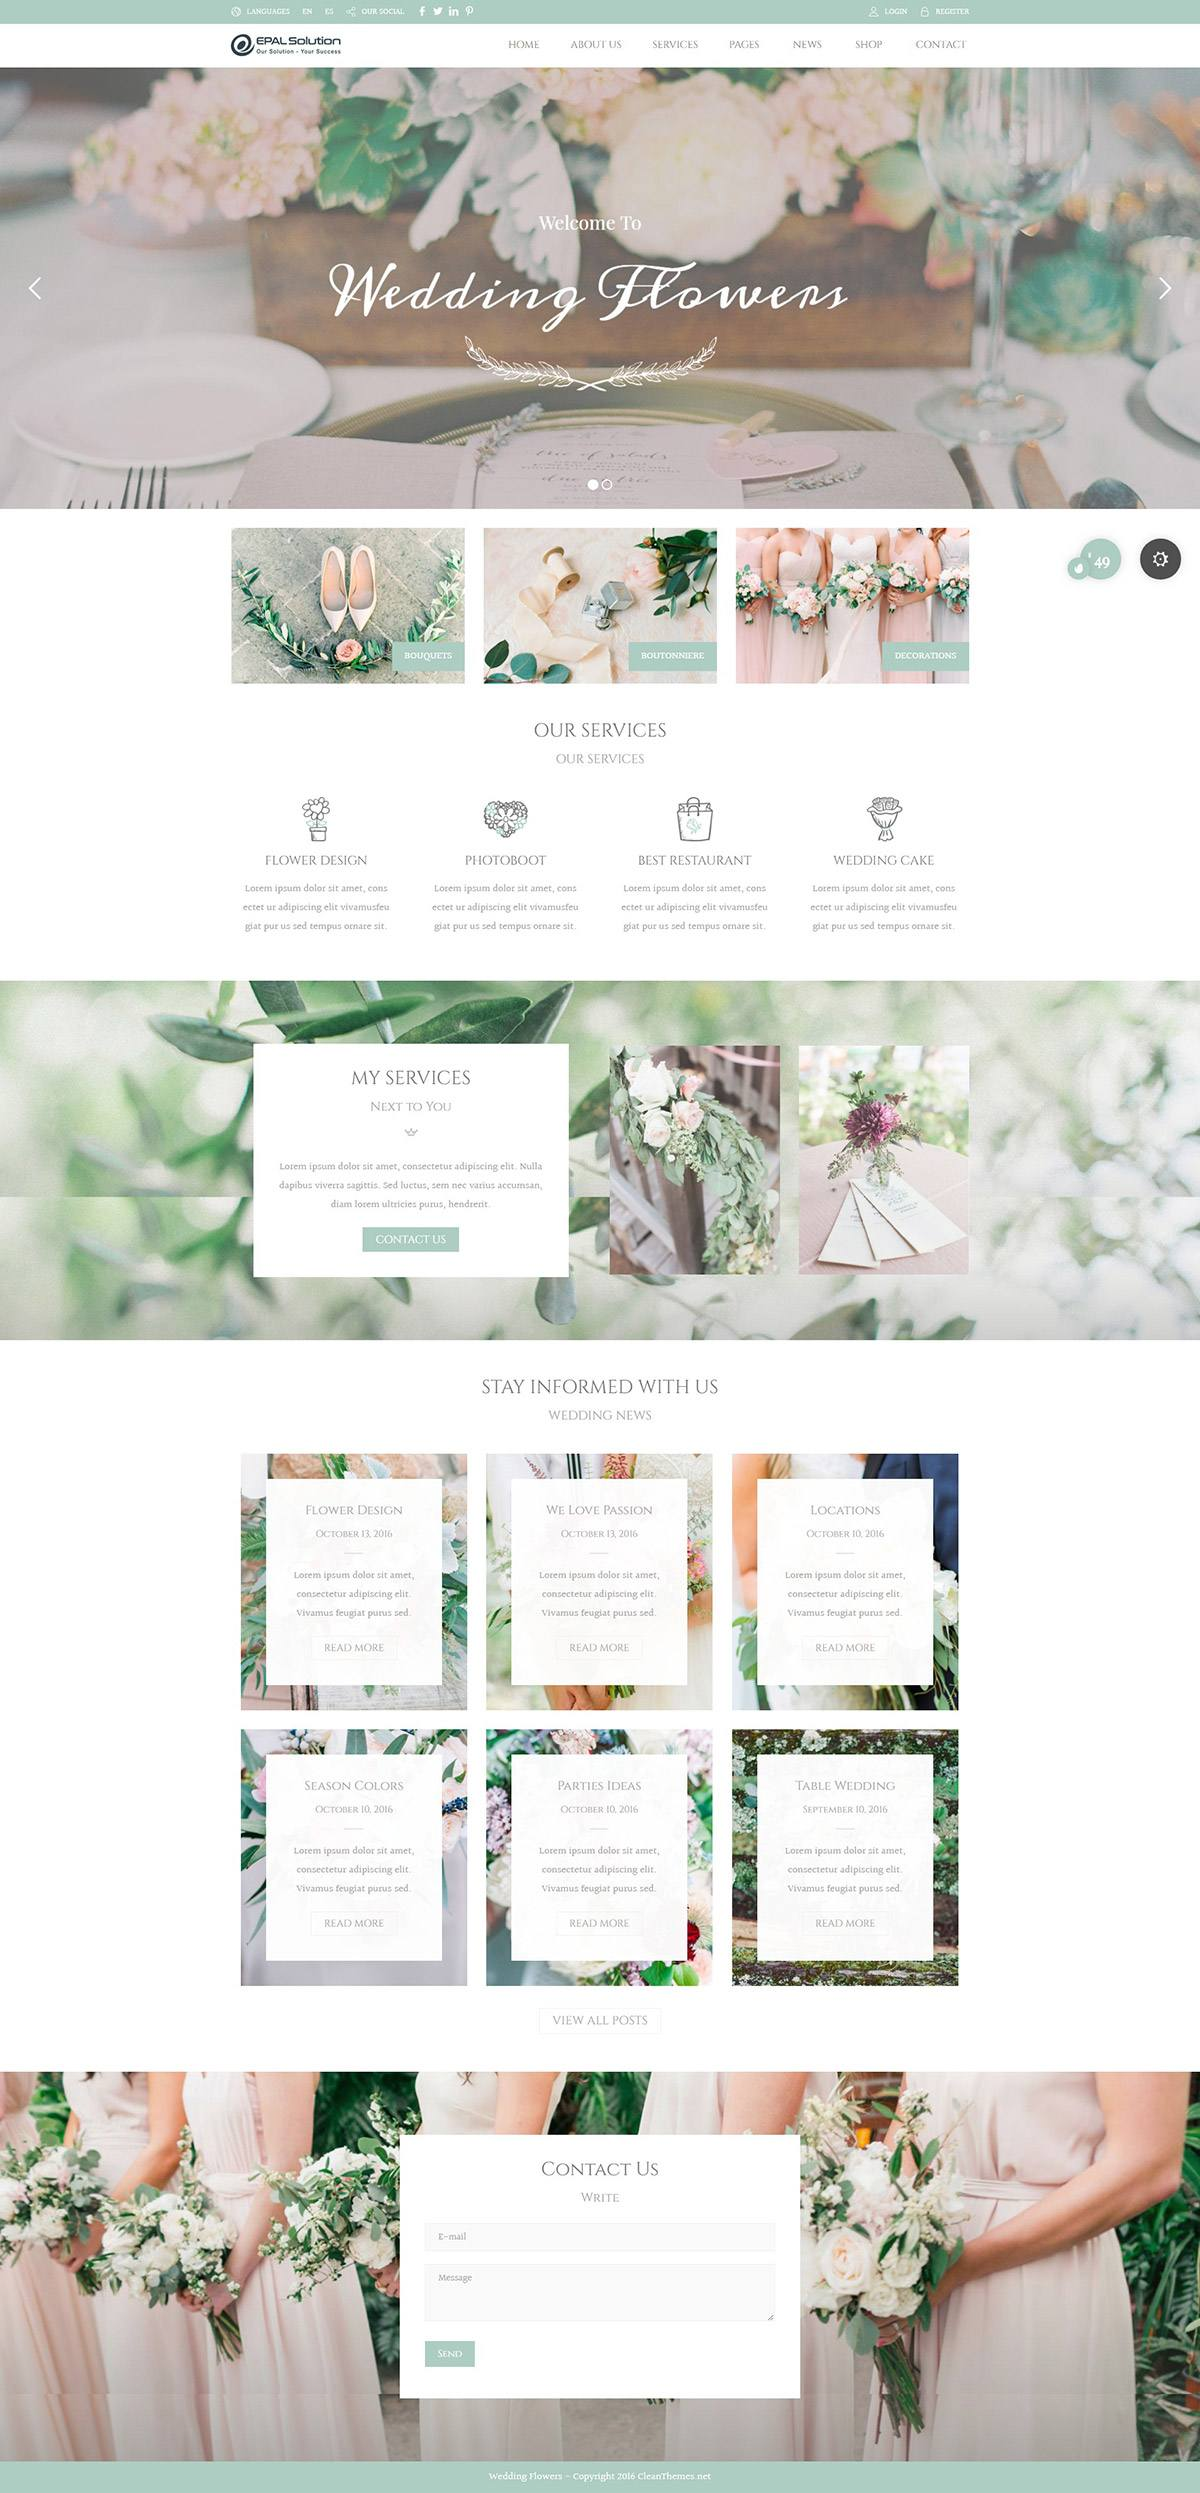 Giao-dien-website-wedding-Industry